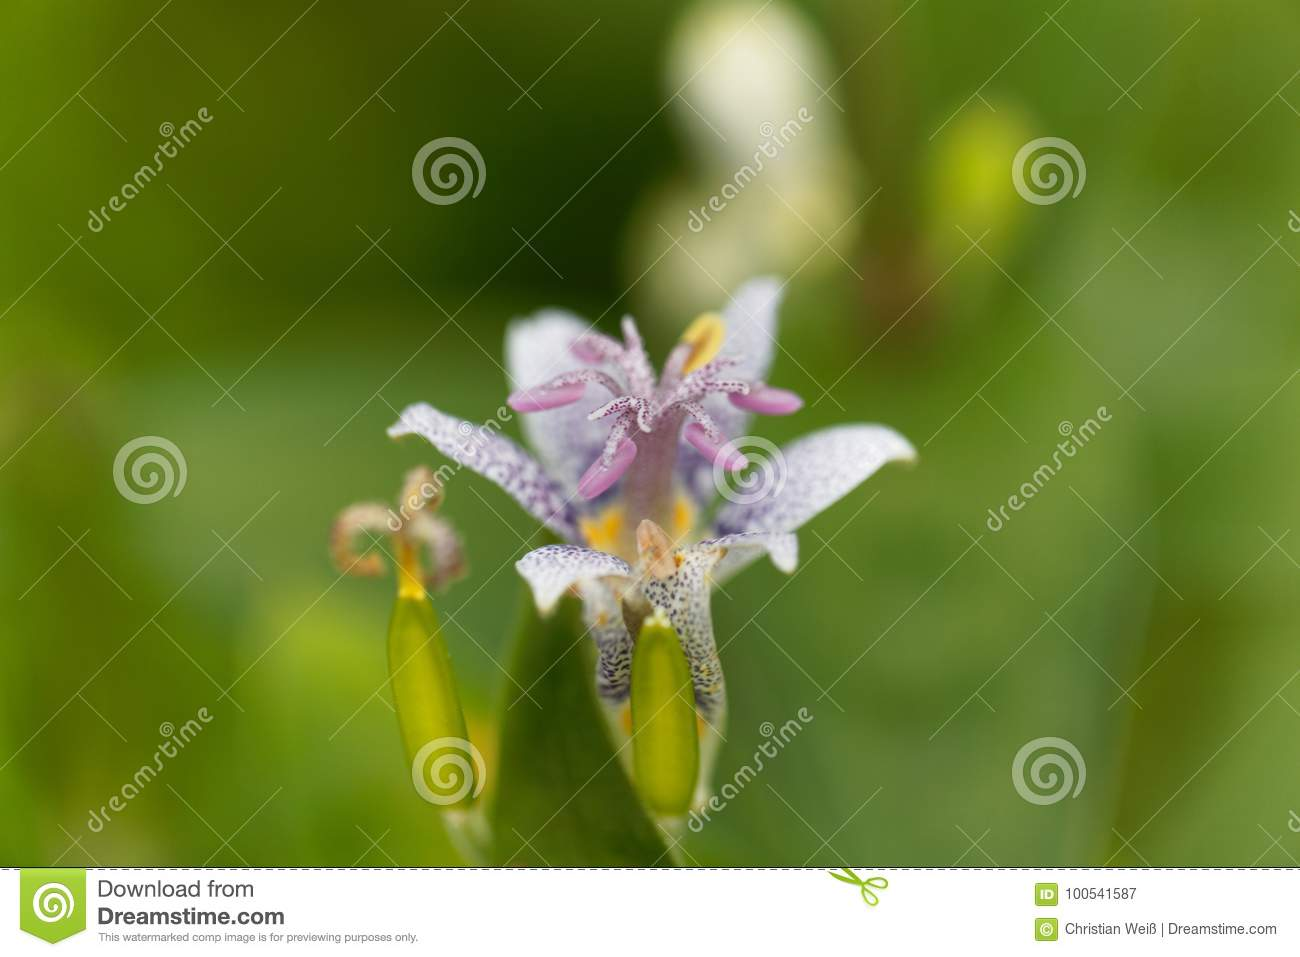 Toad lily flower tricyrtis hirta stock image image of flower download comp izmirmasajfo